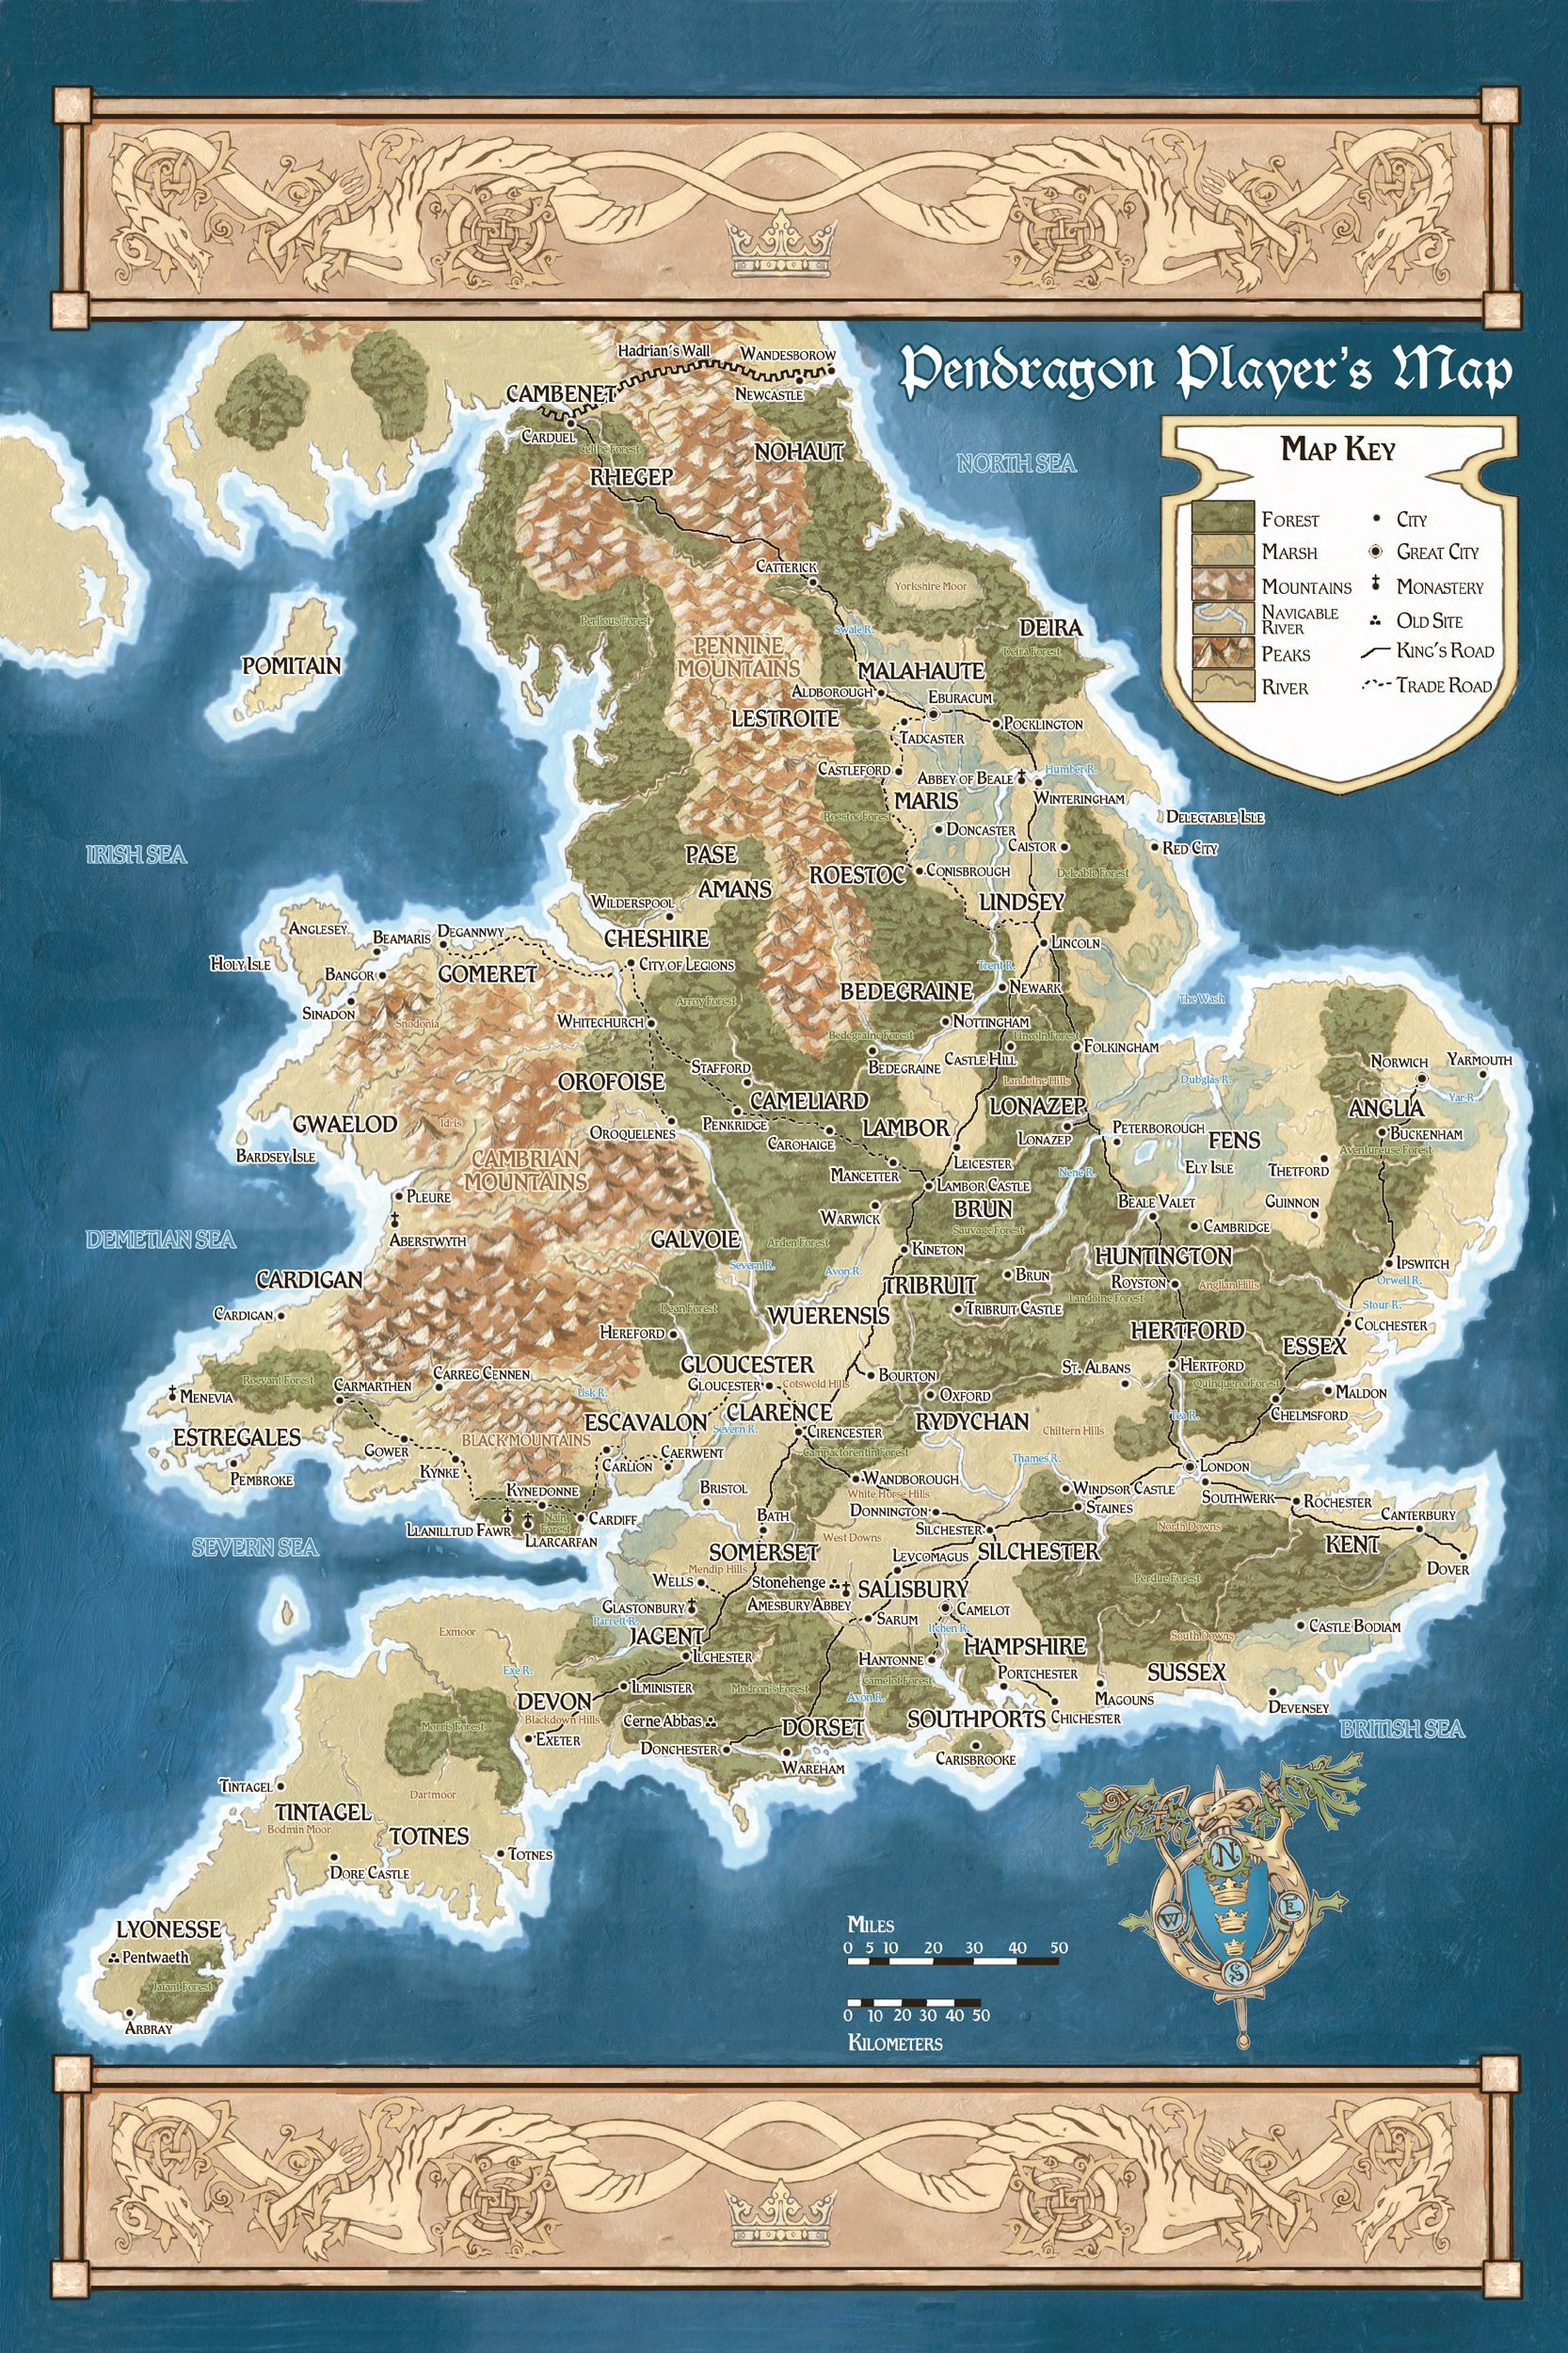 King Arthur Pendragon Notes Maps And Links For Your